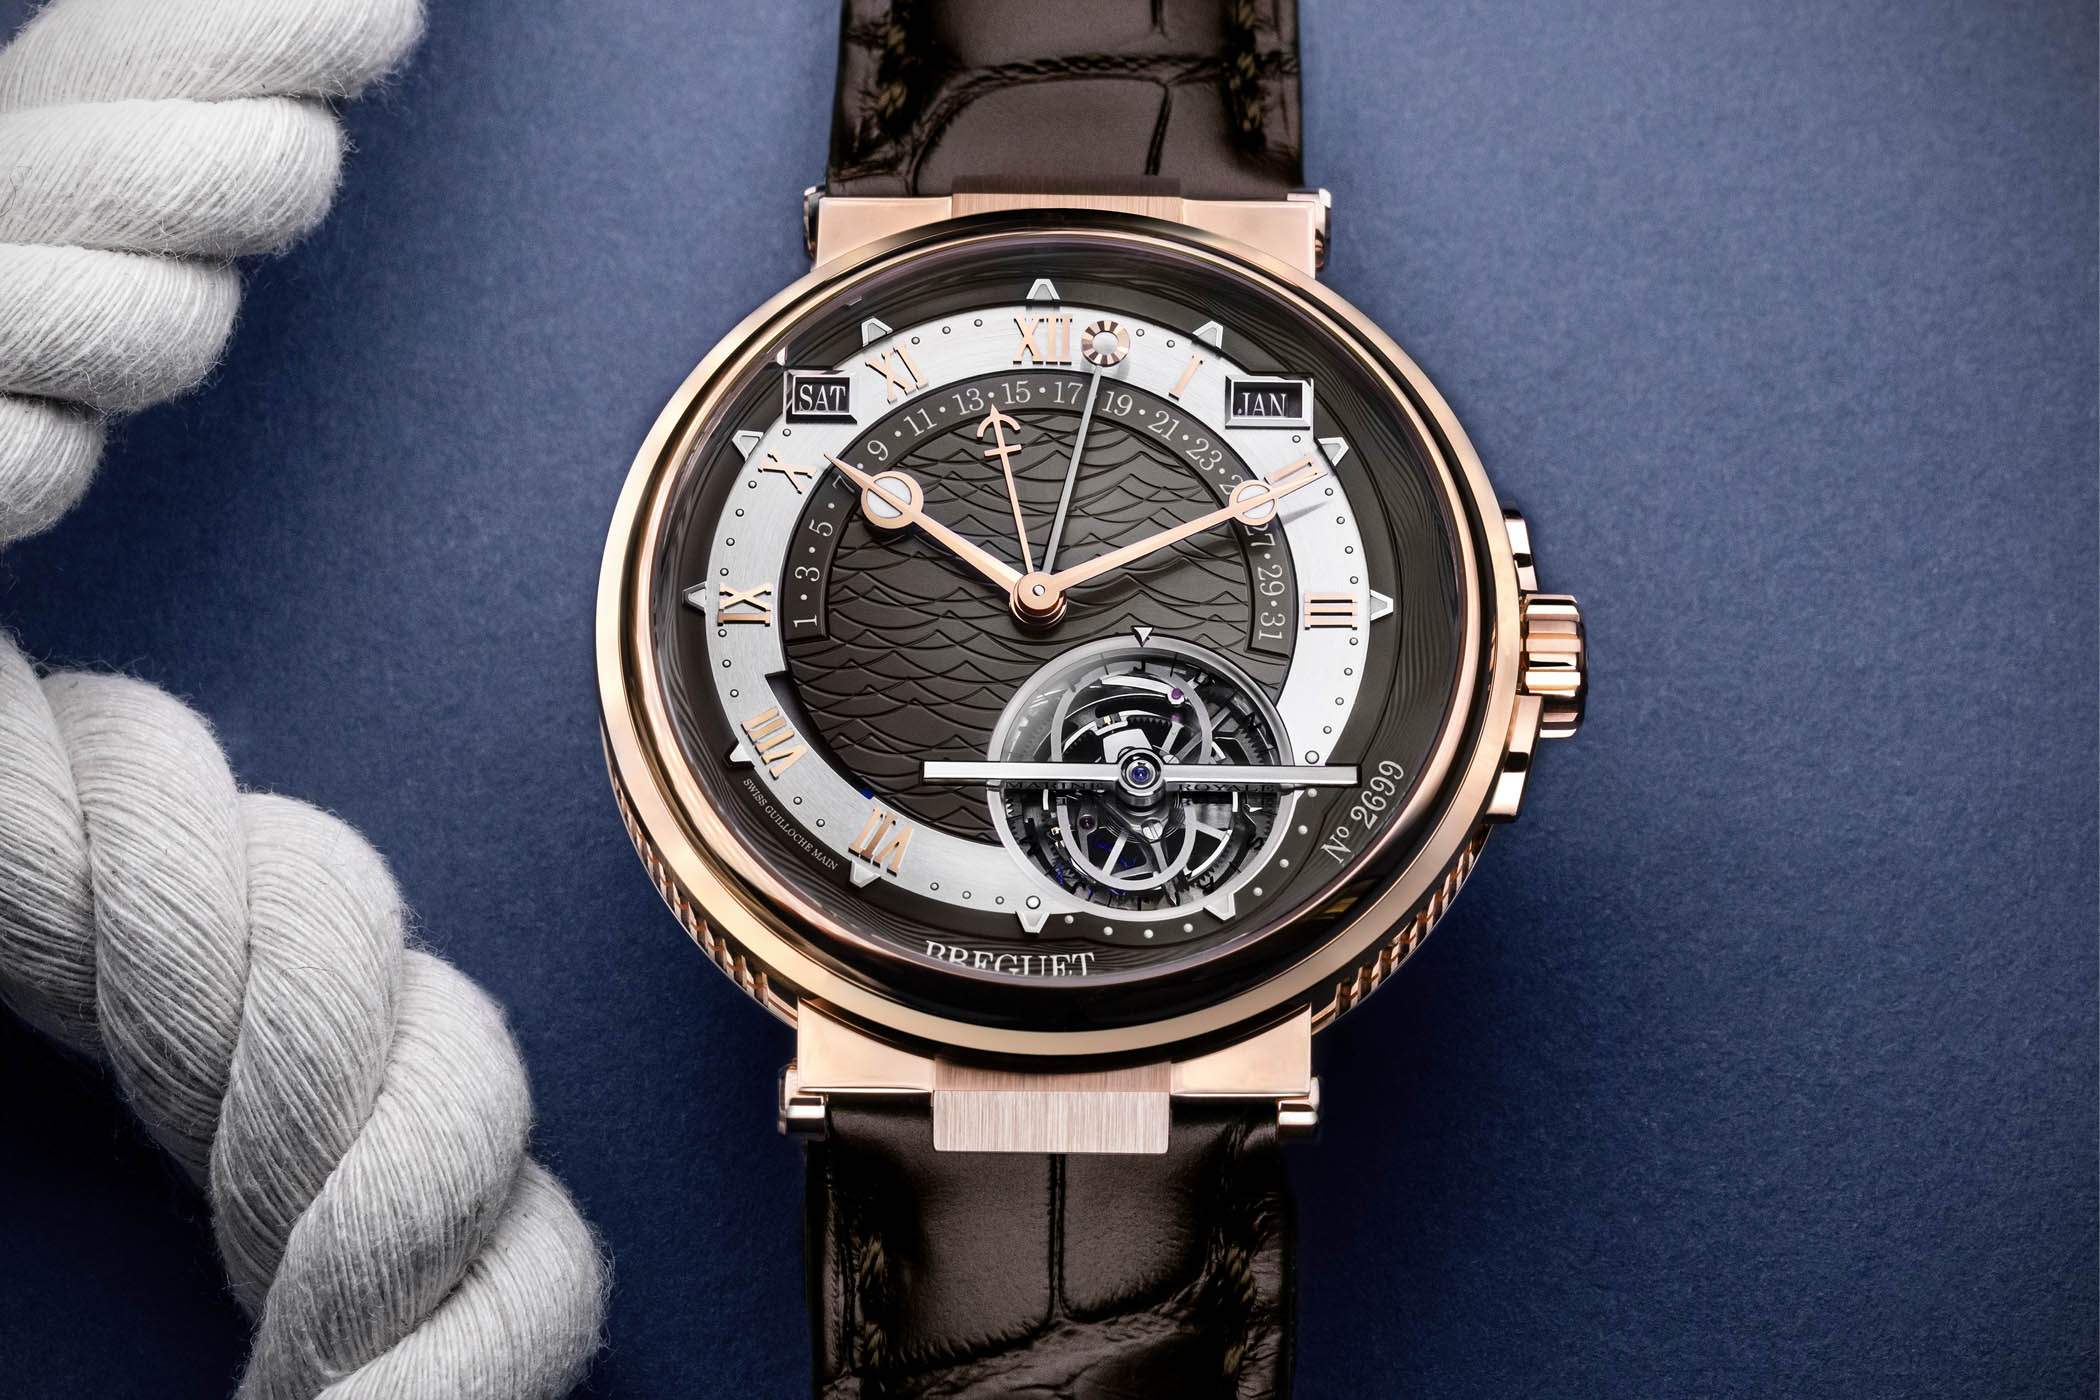 Breguet Marine Tourbillon Equation Marchante 5887 Slate Grey Dial - 5887BR92WV